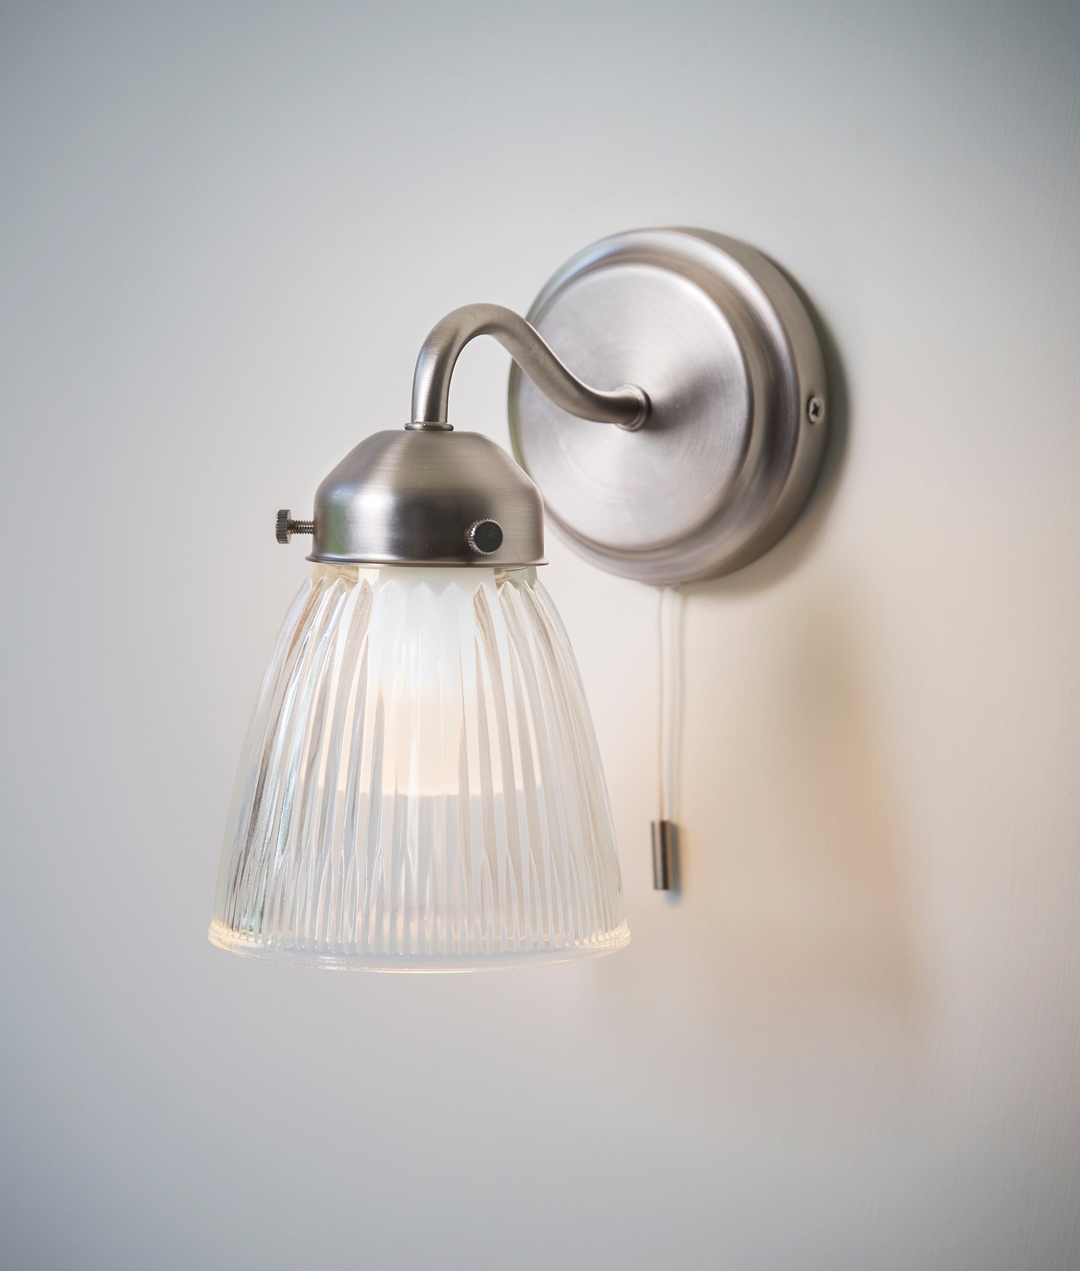 La Parisienne Satin Nickel Bathroom Wall Light With Shade Pull Cord